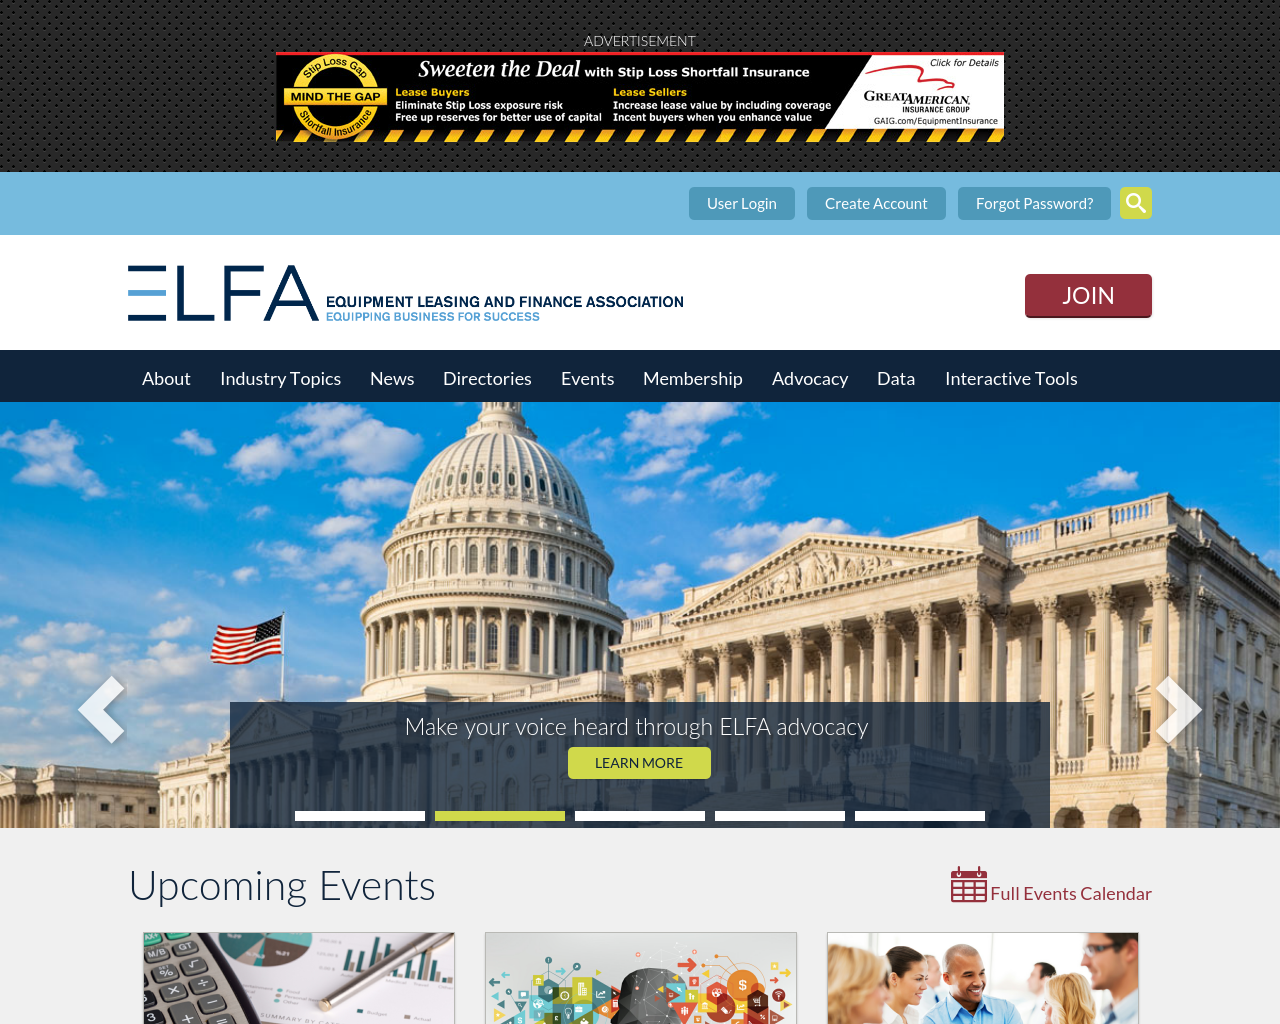 ELFA-Equipment-Leasing-and-Finance-Association-Advertising-Reviews-Pricing